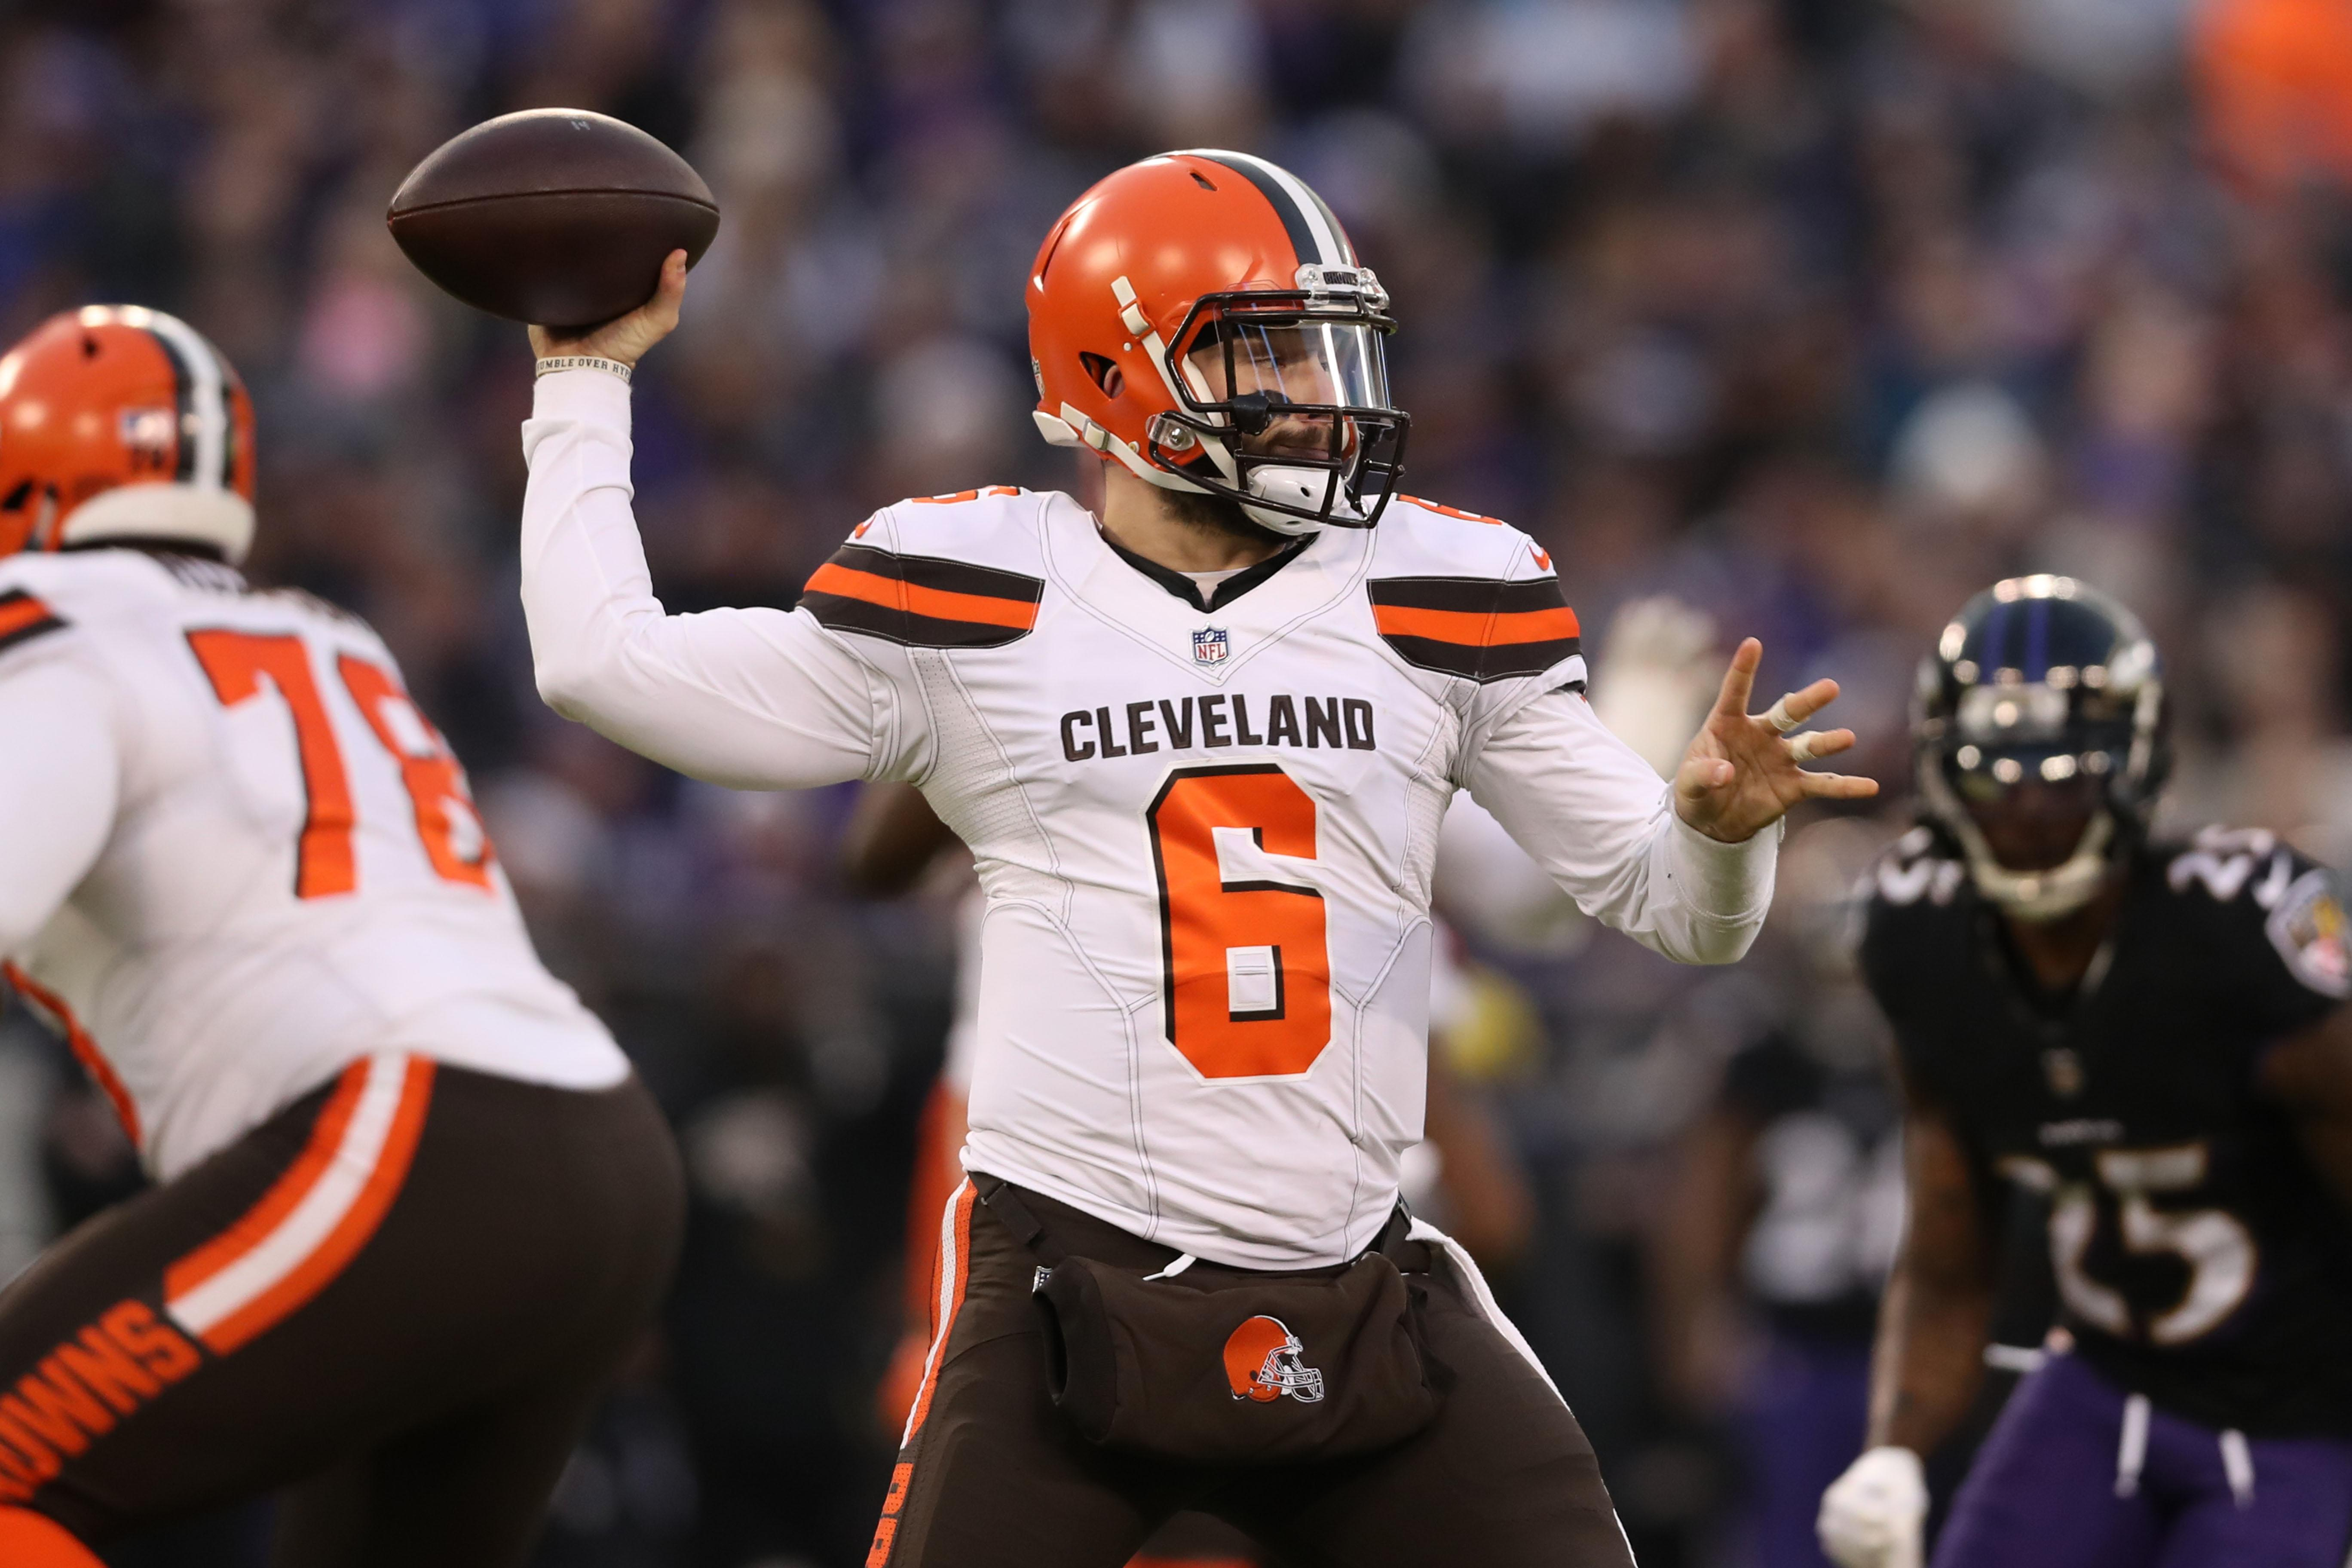 ca7305f3b744 Browns-Ravens  Baker Mayfield sets rookie mark with 27th TD